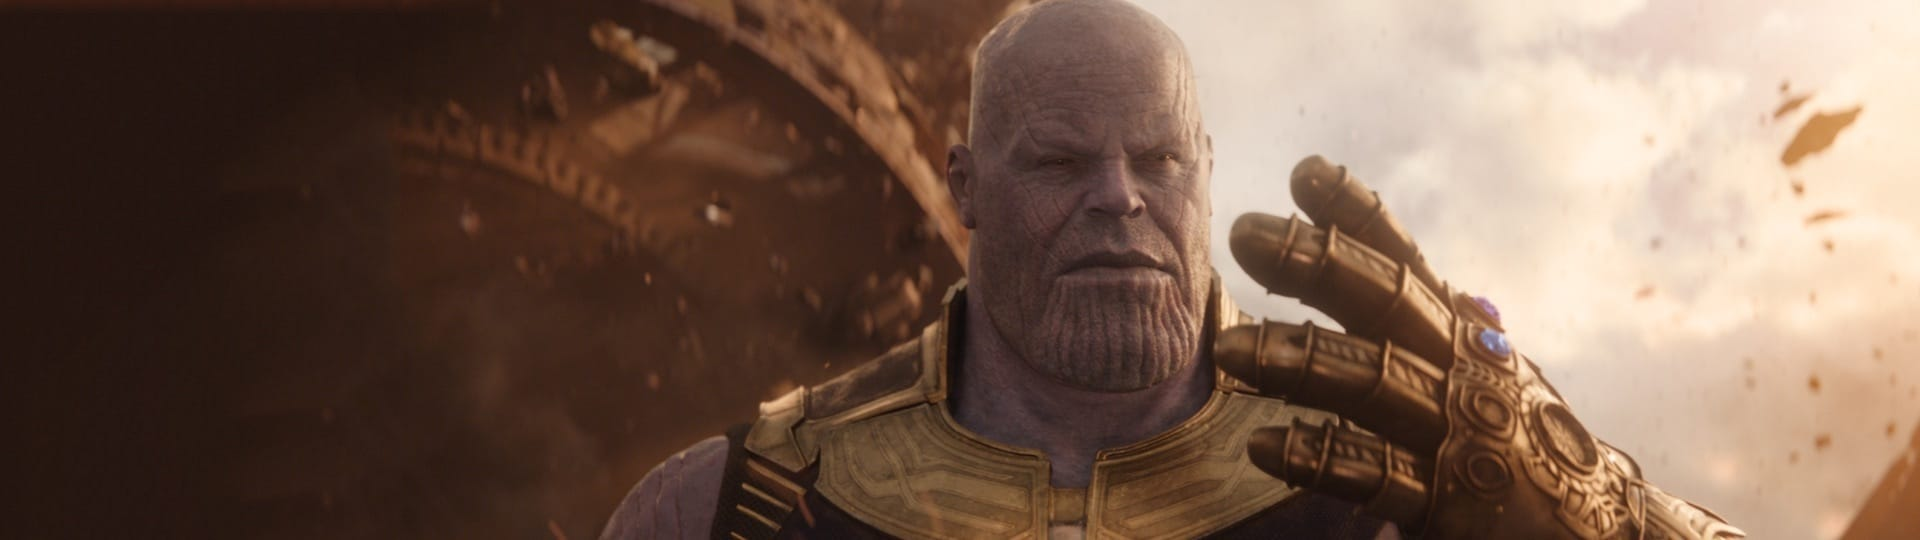 Find out more about Avengers: Infinity War